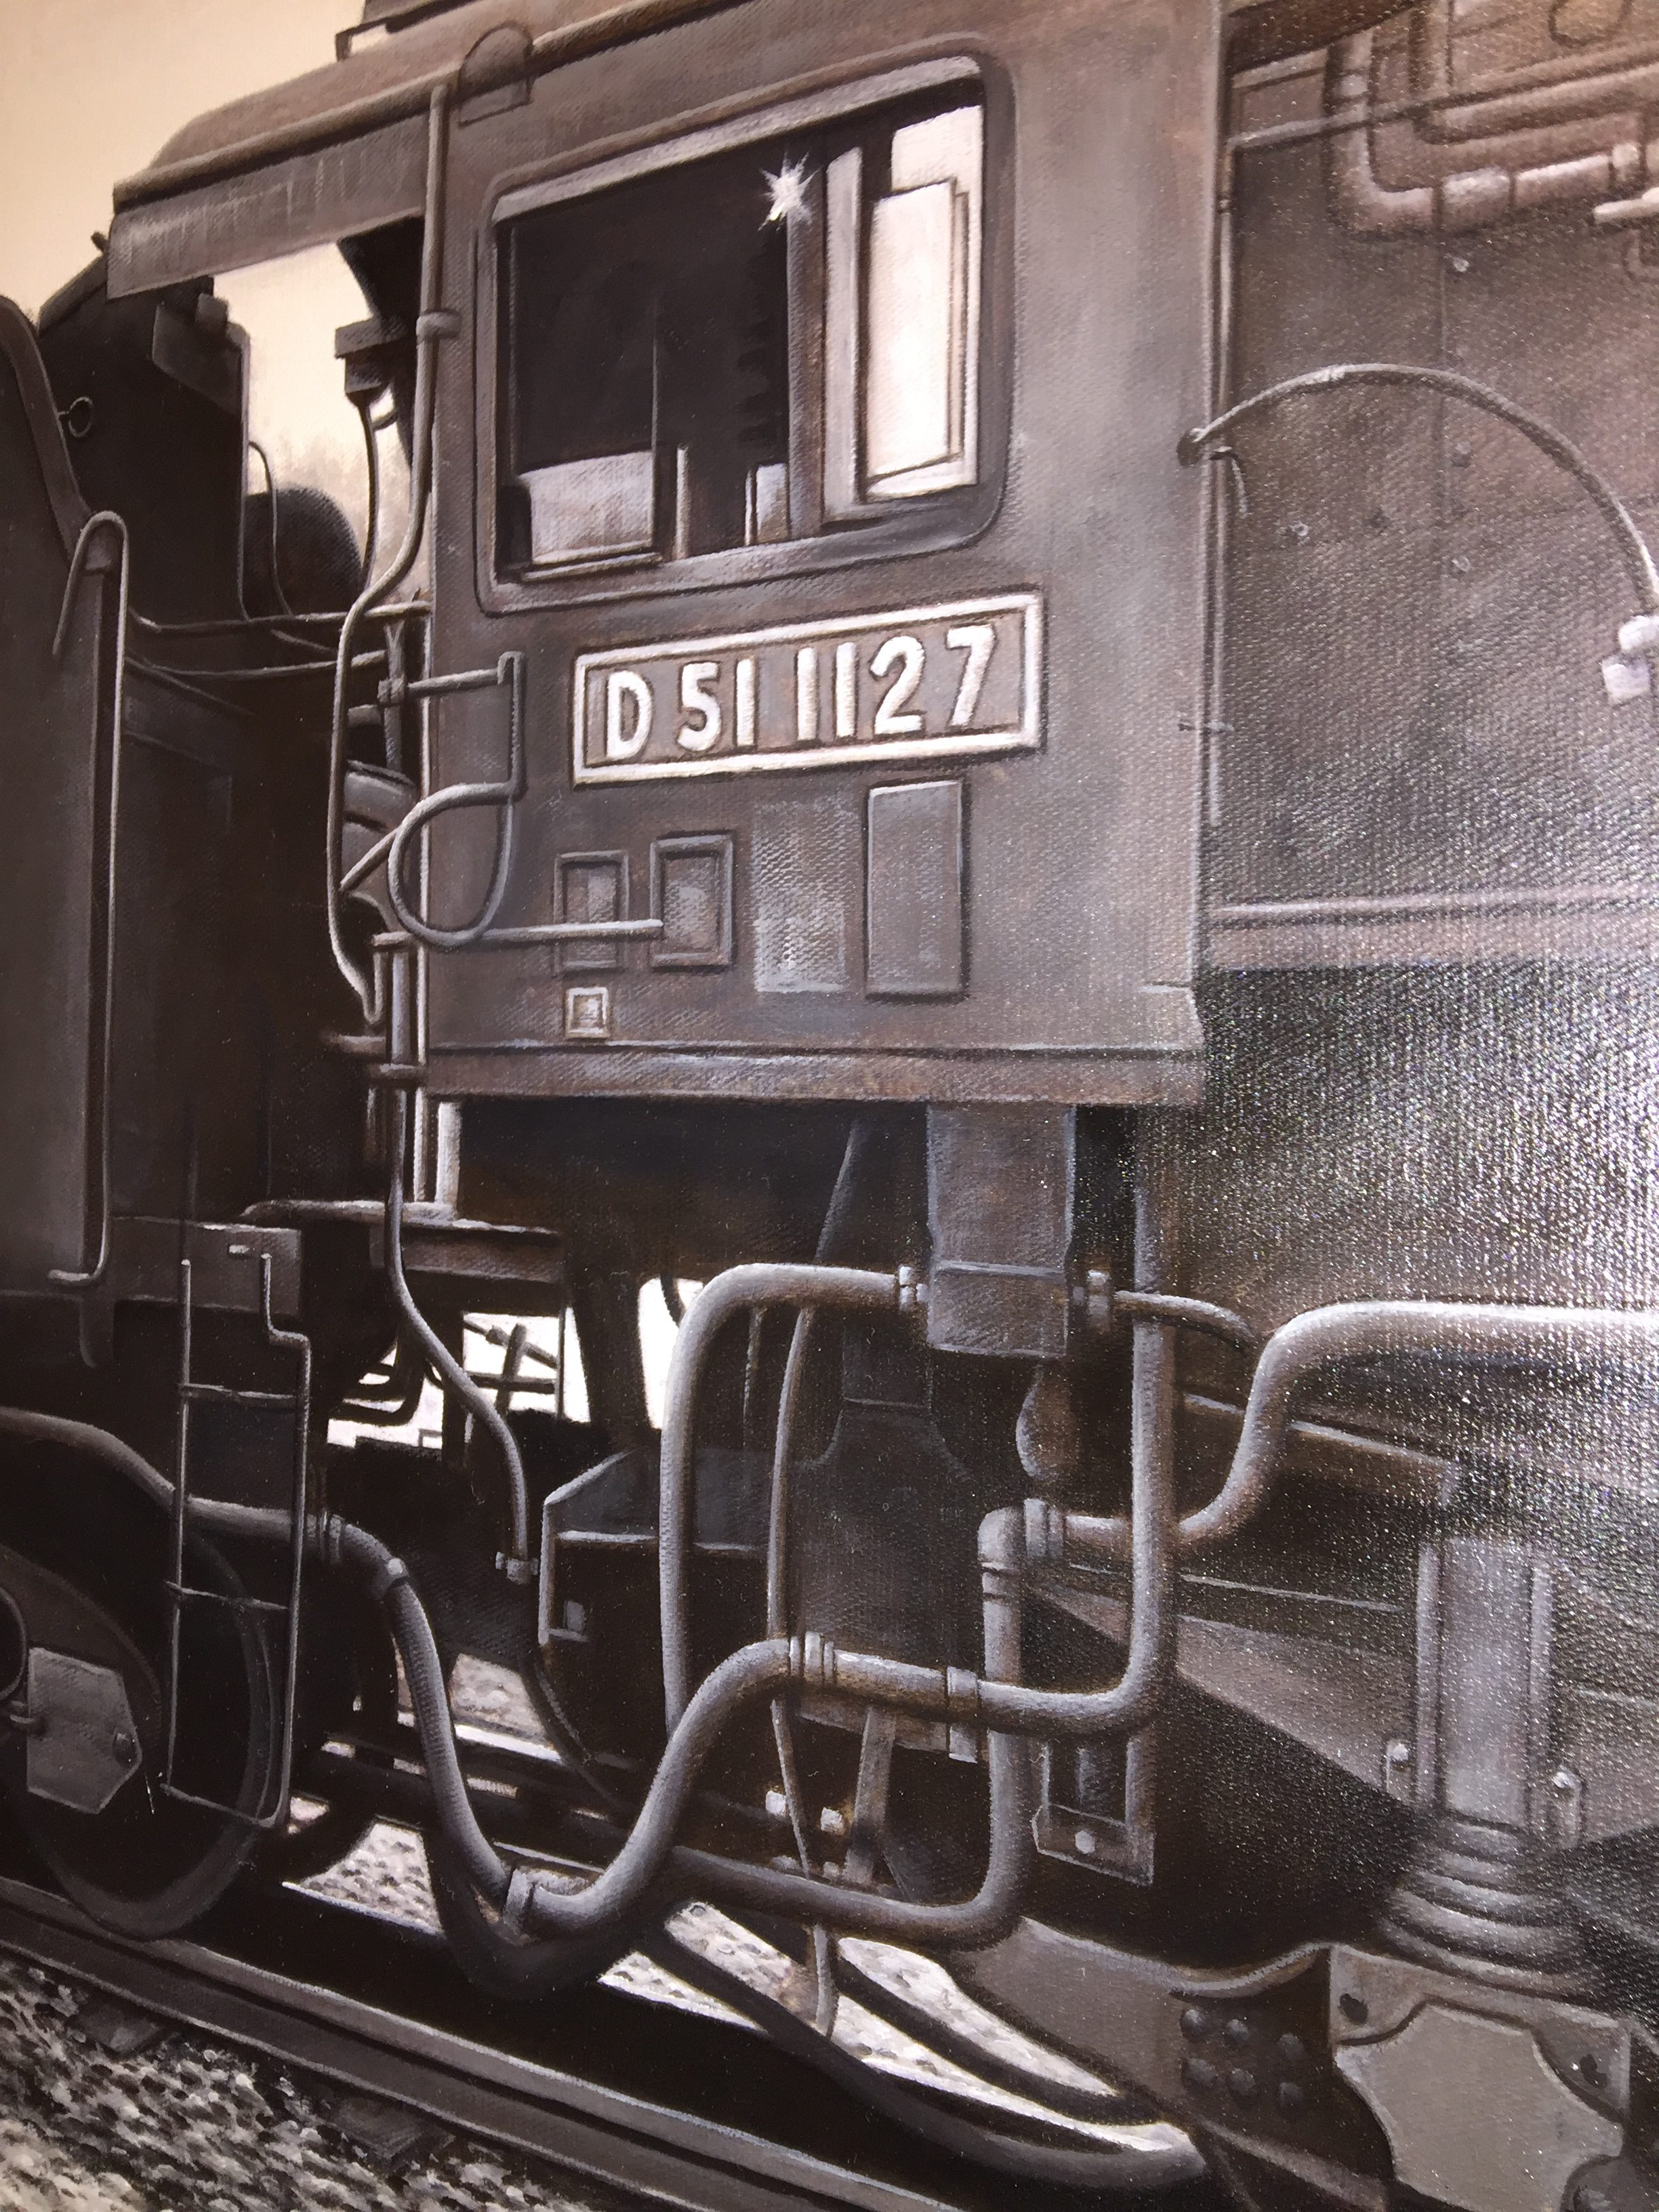 Train Art Collection油絵11:限定商品 カマボコドーム 夕張駅で出発待ちのD511127